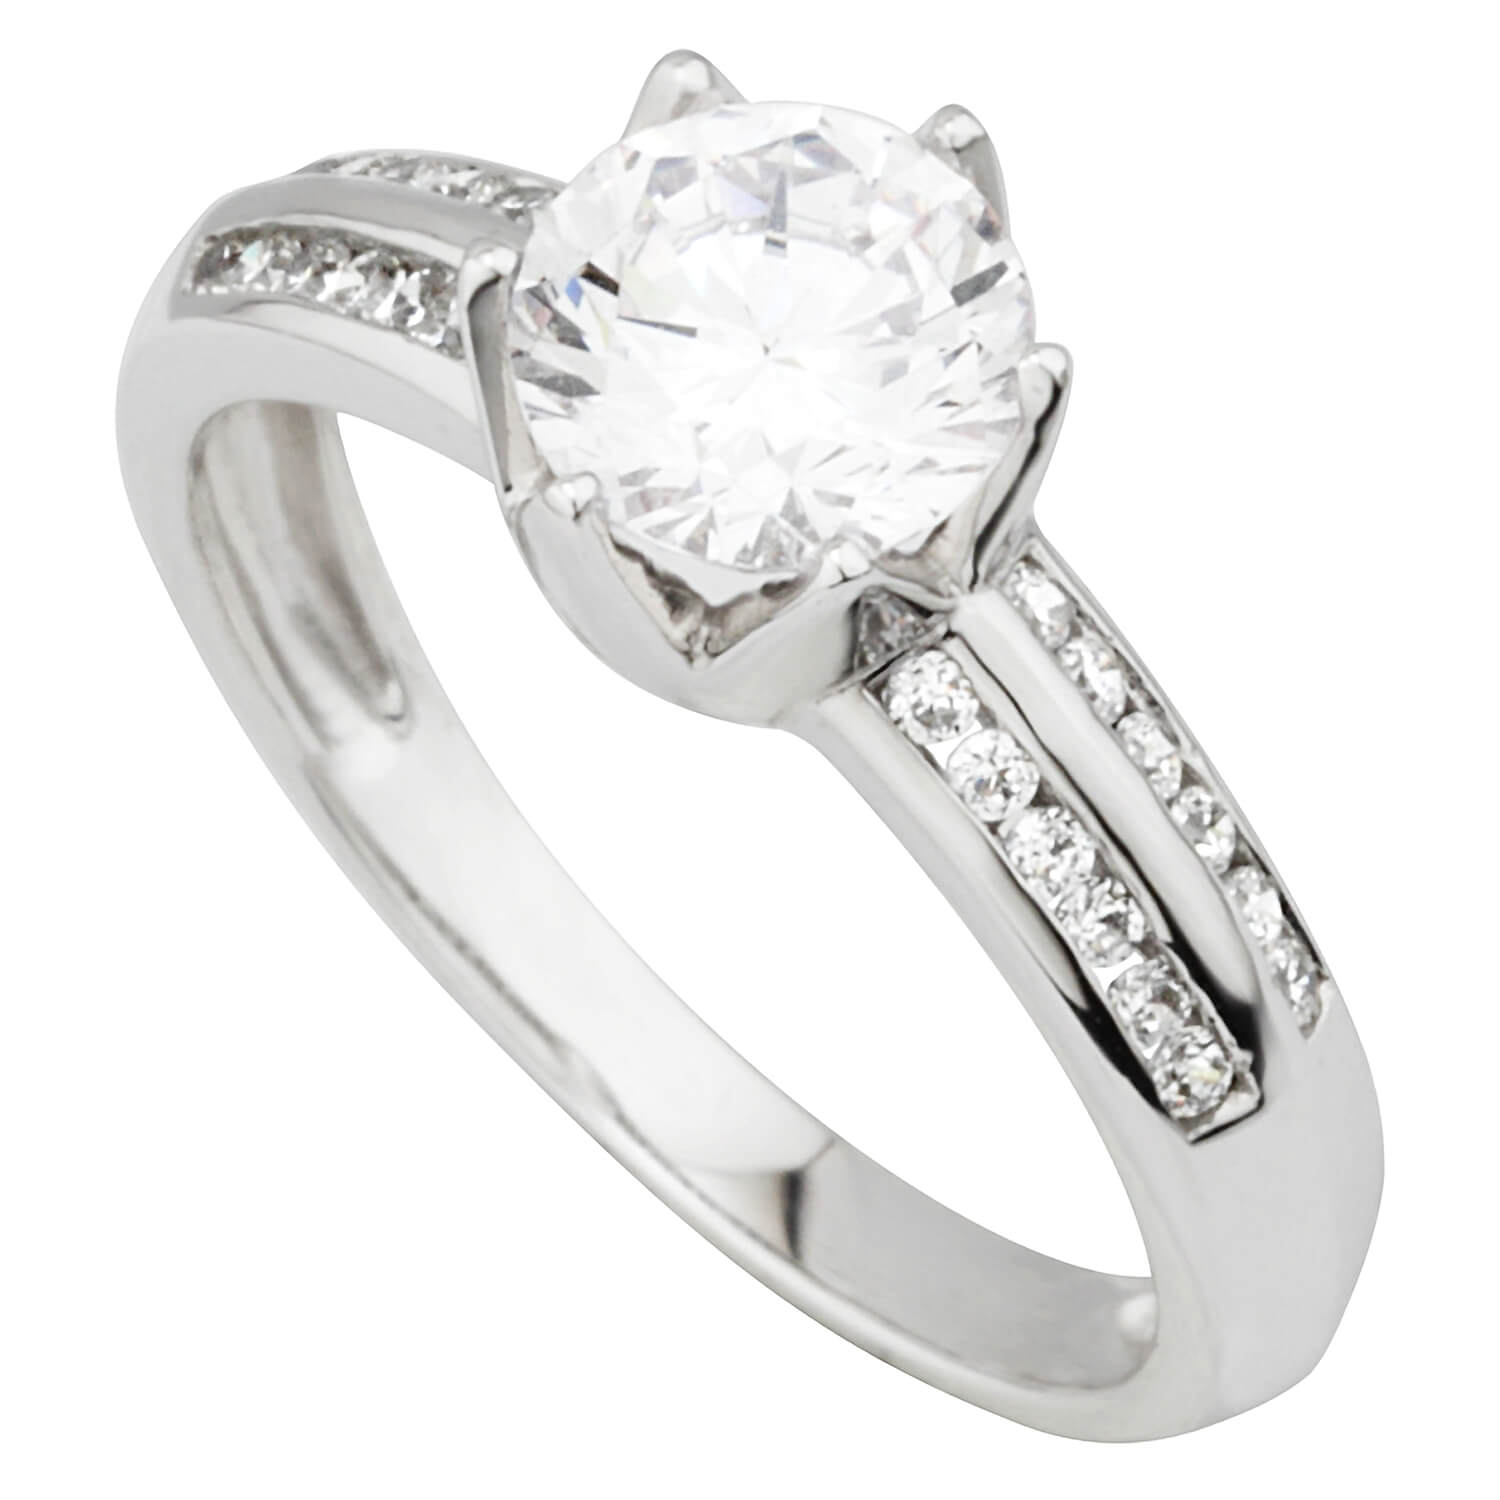 Ladies 9ct White Gold and Cubic Zirconia Dress Ring